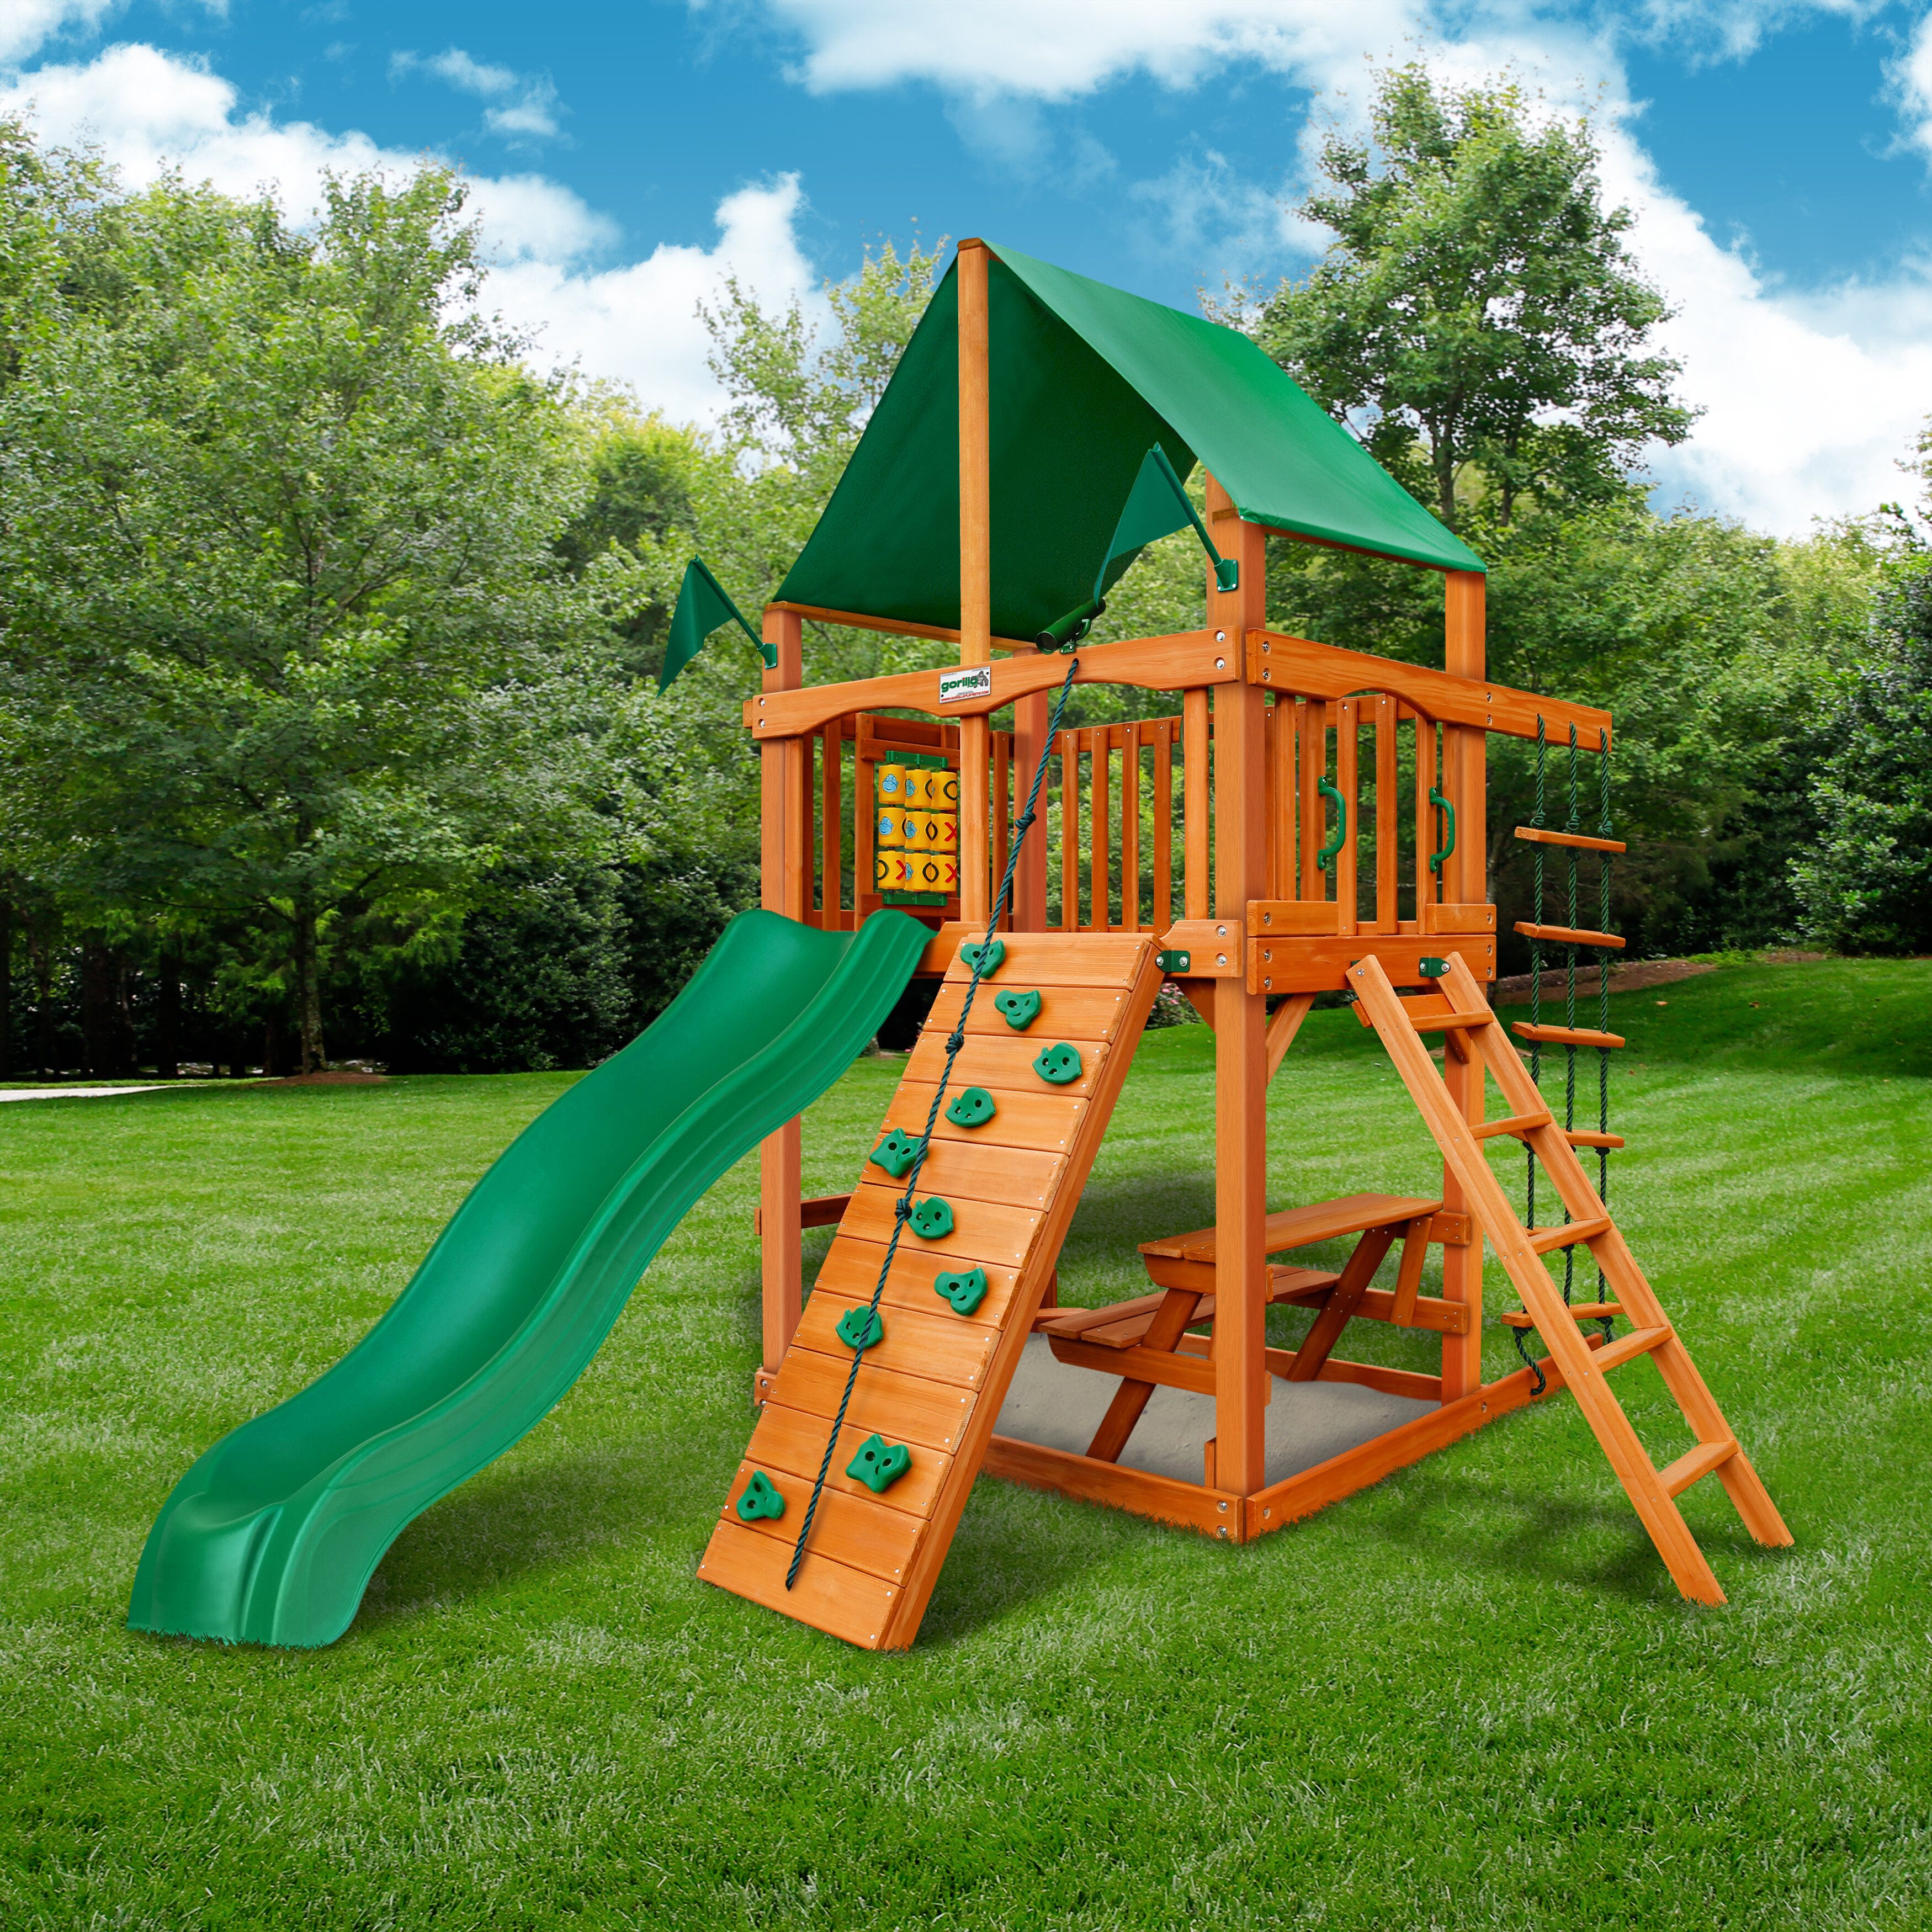 Gorilla Playsets Cau Tower Swing Set With Canopy Roof Reviews Wayfair